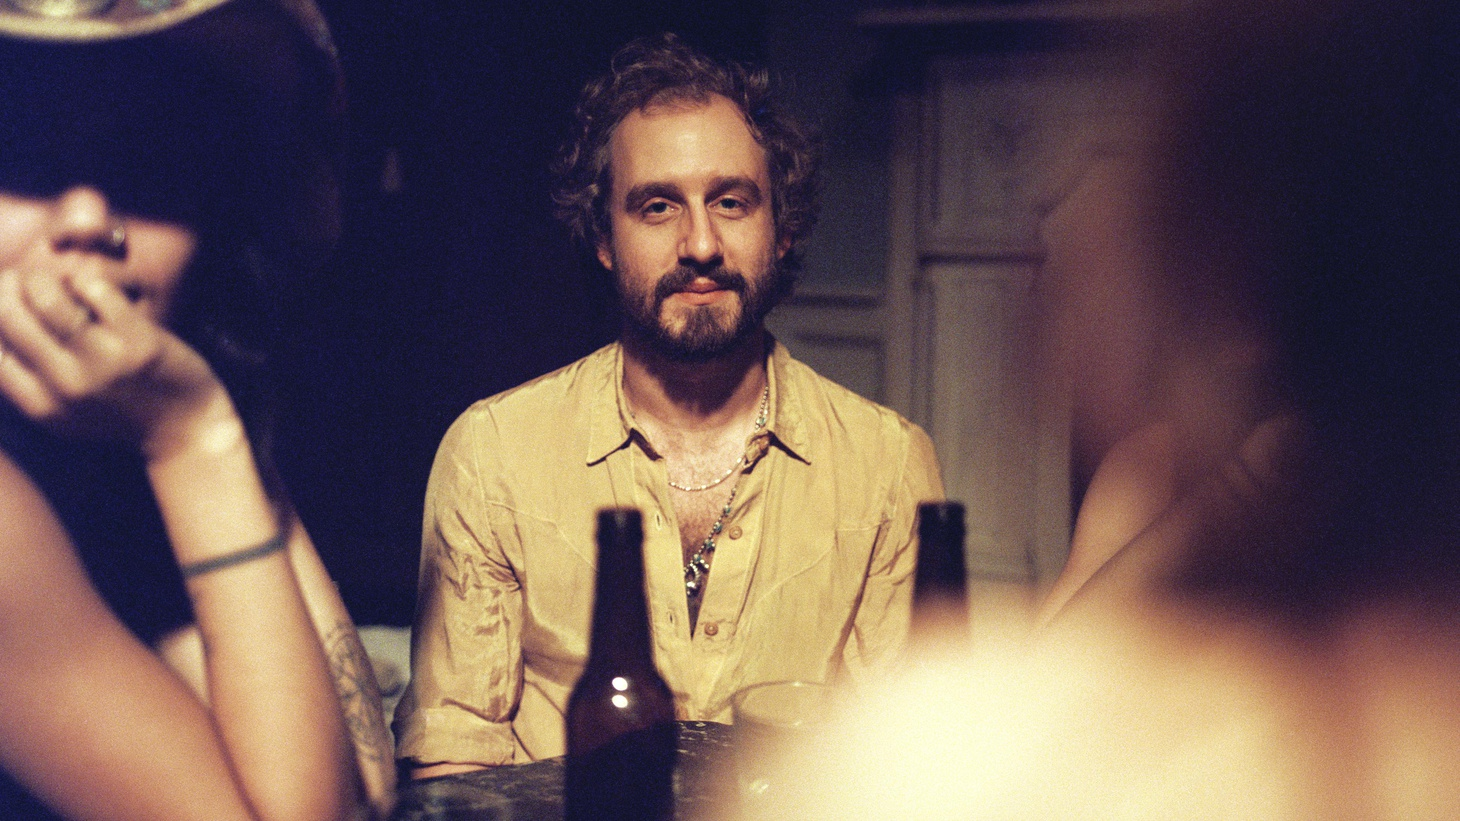 Sometimes the lowest point in a songwriter's life can be the most fertile. Phosphorescent front-man Matthew Houck turned his struggles into a set of moving songs.